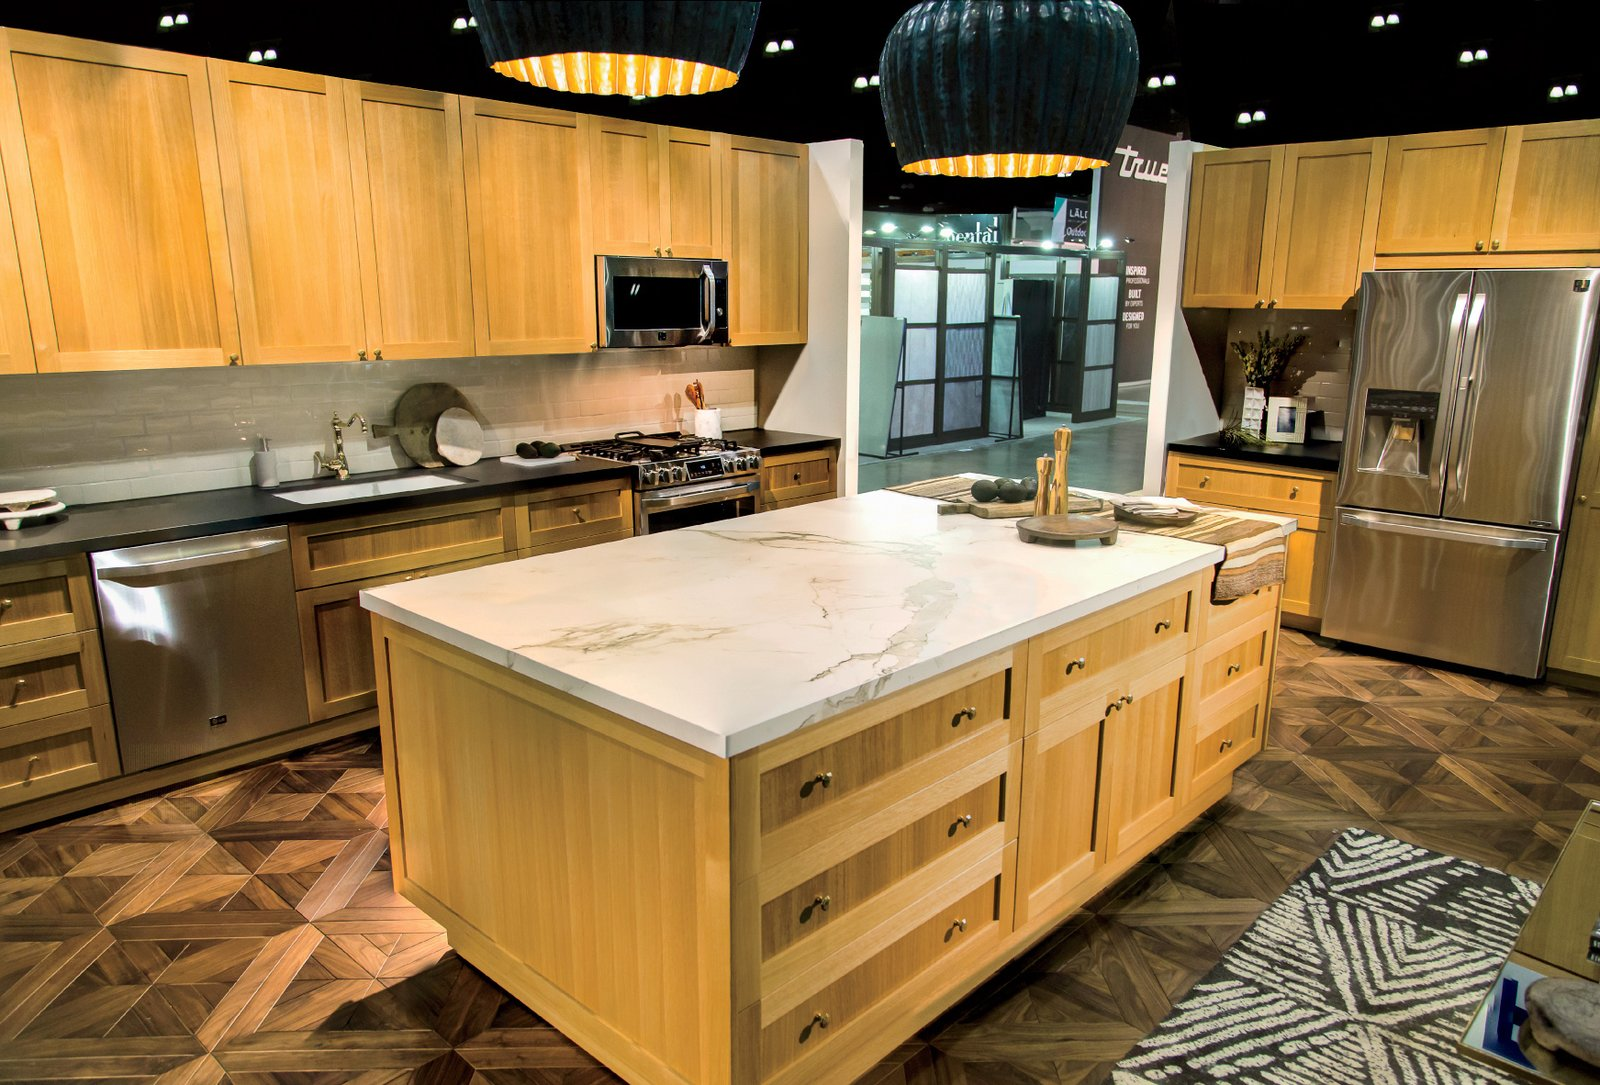 The larger kitchen vignette was decked out with LG Studio appliances that Berkus helped design.  Get Kitchen Inspiration from the LG Studio Re-Imagination Pavilion by Erika Heet